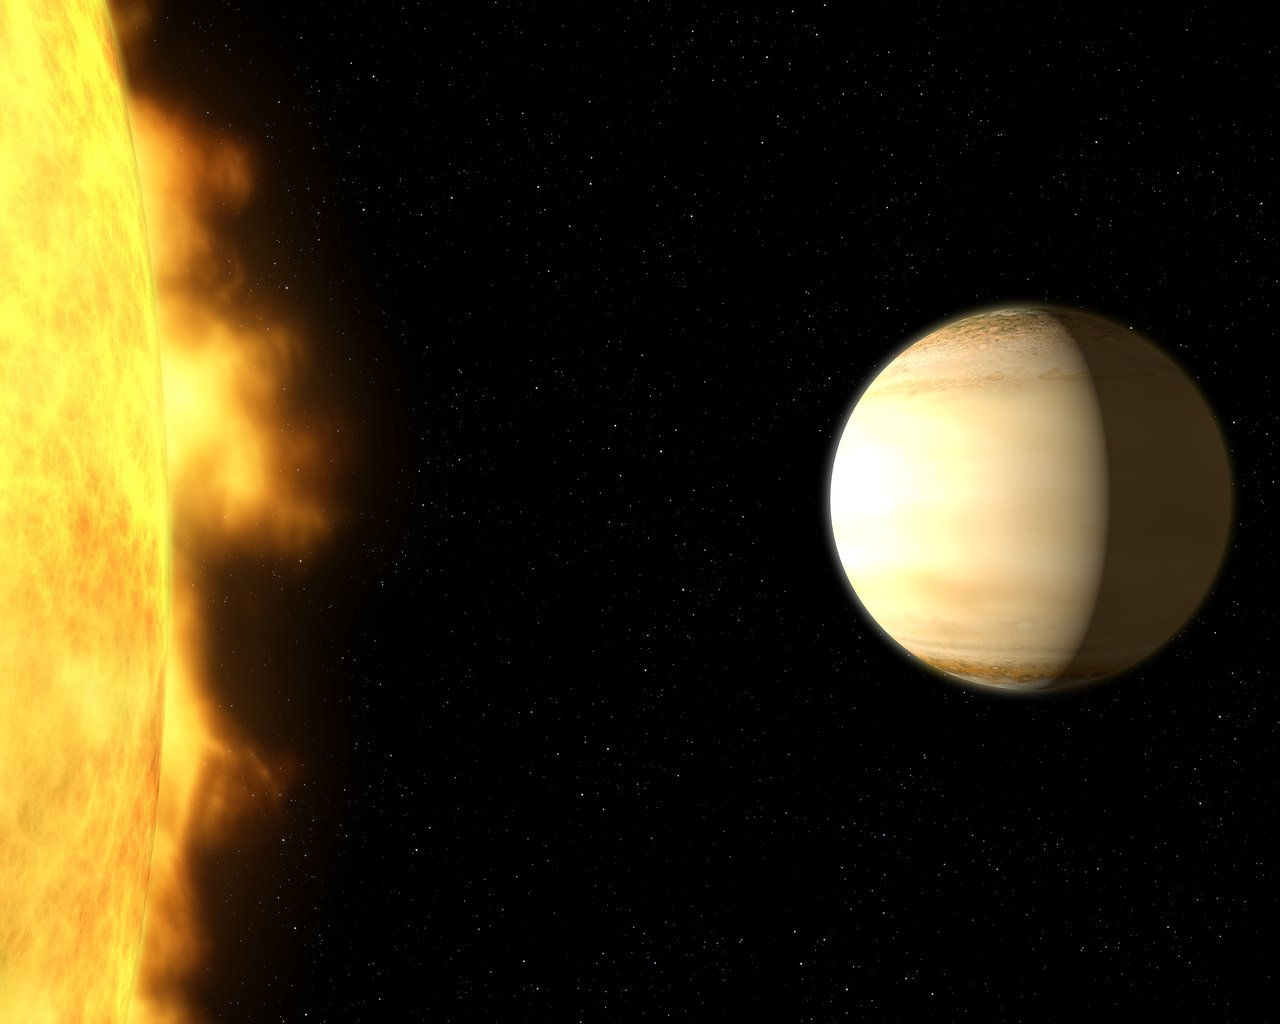 Science Release: Hubble observes exoplanet atmosphere in more detail than ever before